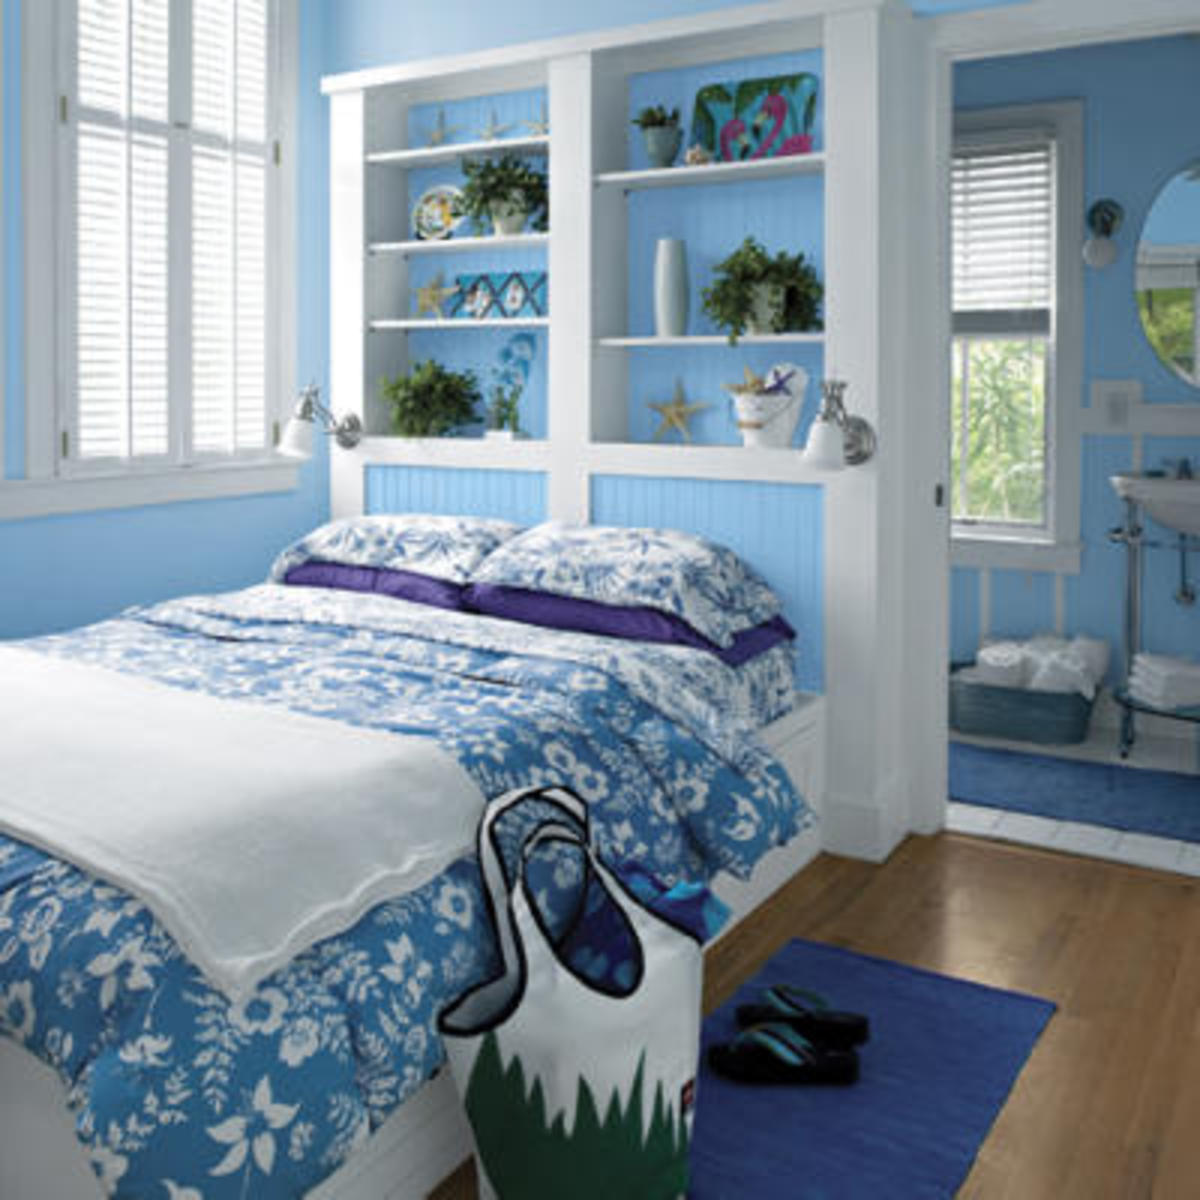 Interior decorating what paint color choices and schemes for High school bedroom designs